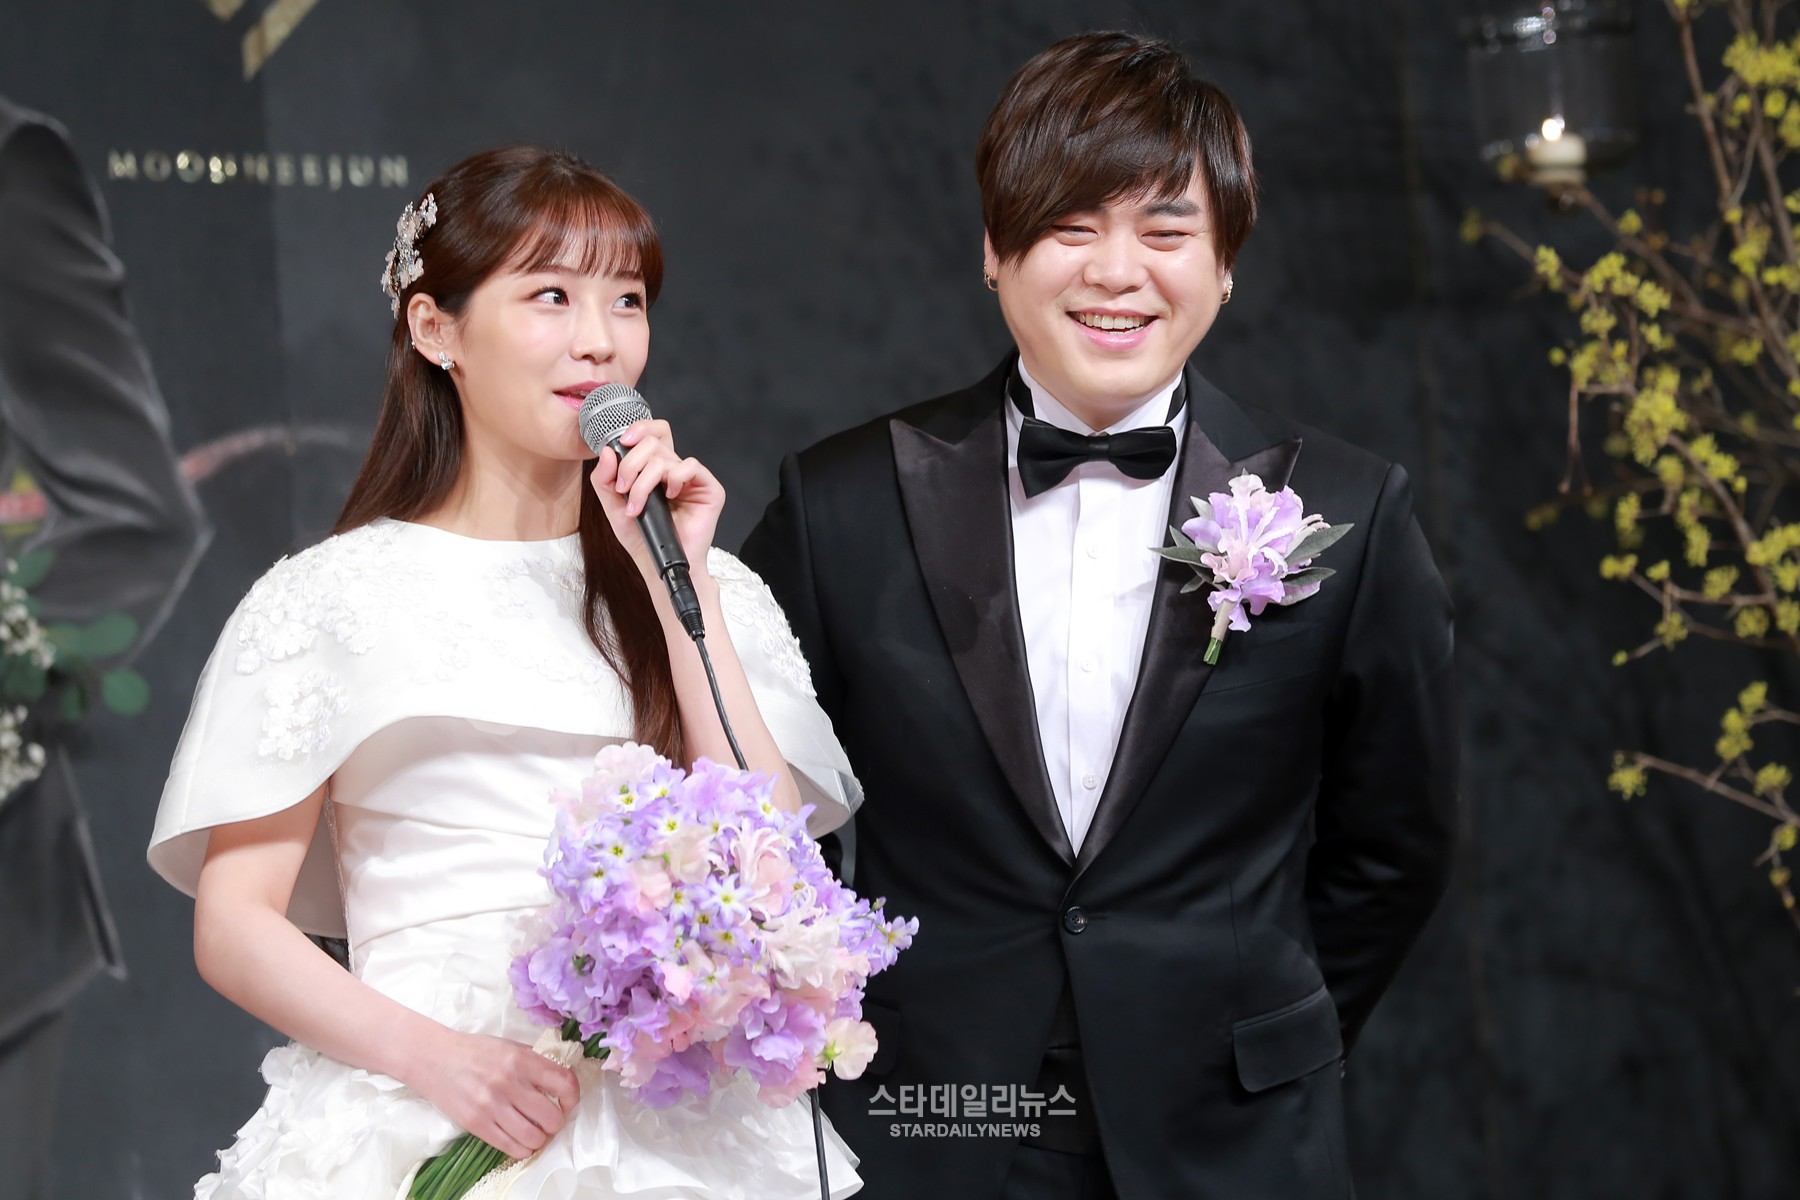 Moon Hee Jun Soyul Star Daily News